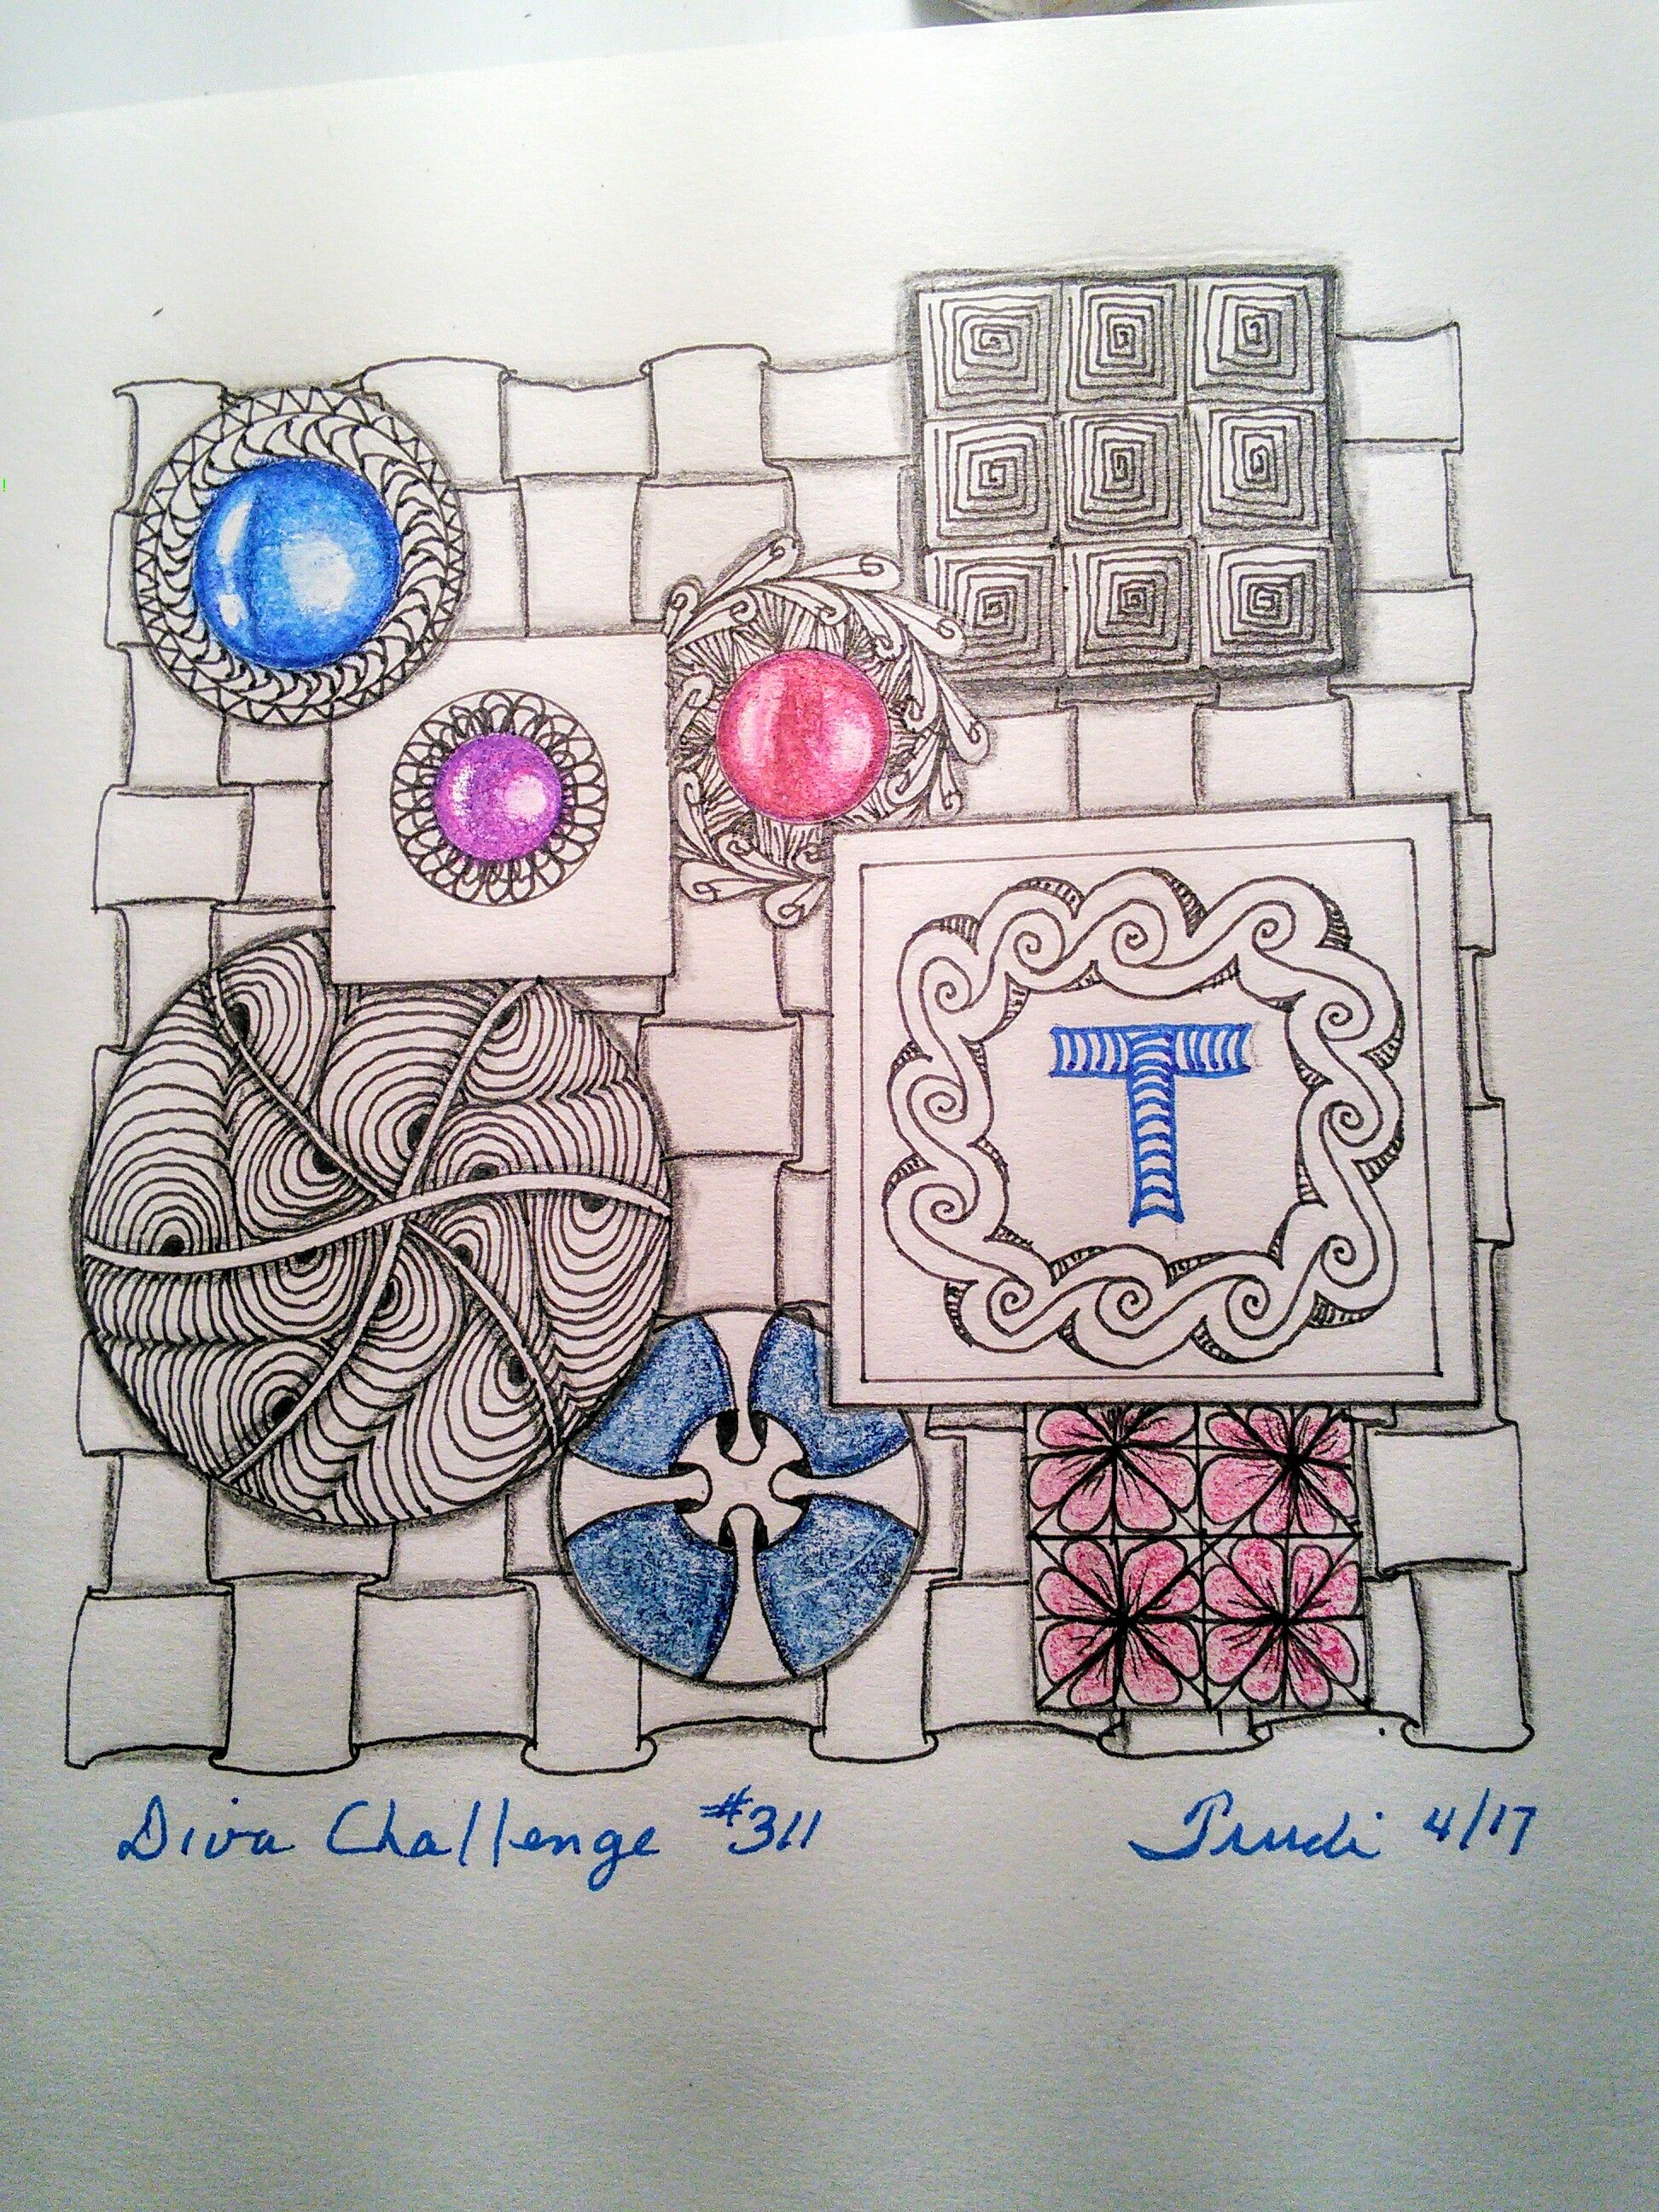 Diva Challenge #311 Circles and Squares using Tangles Ixorus, Inwave, Eddyper, Emingle, Class-EE and Nymph with coloured pencils.